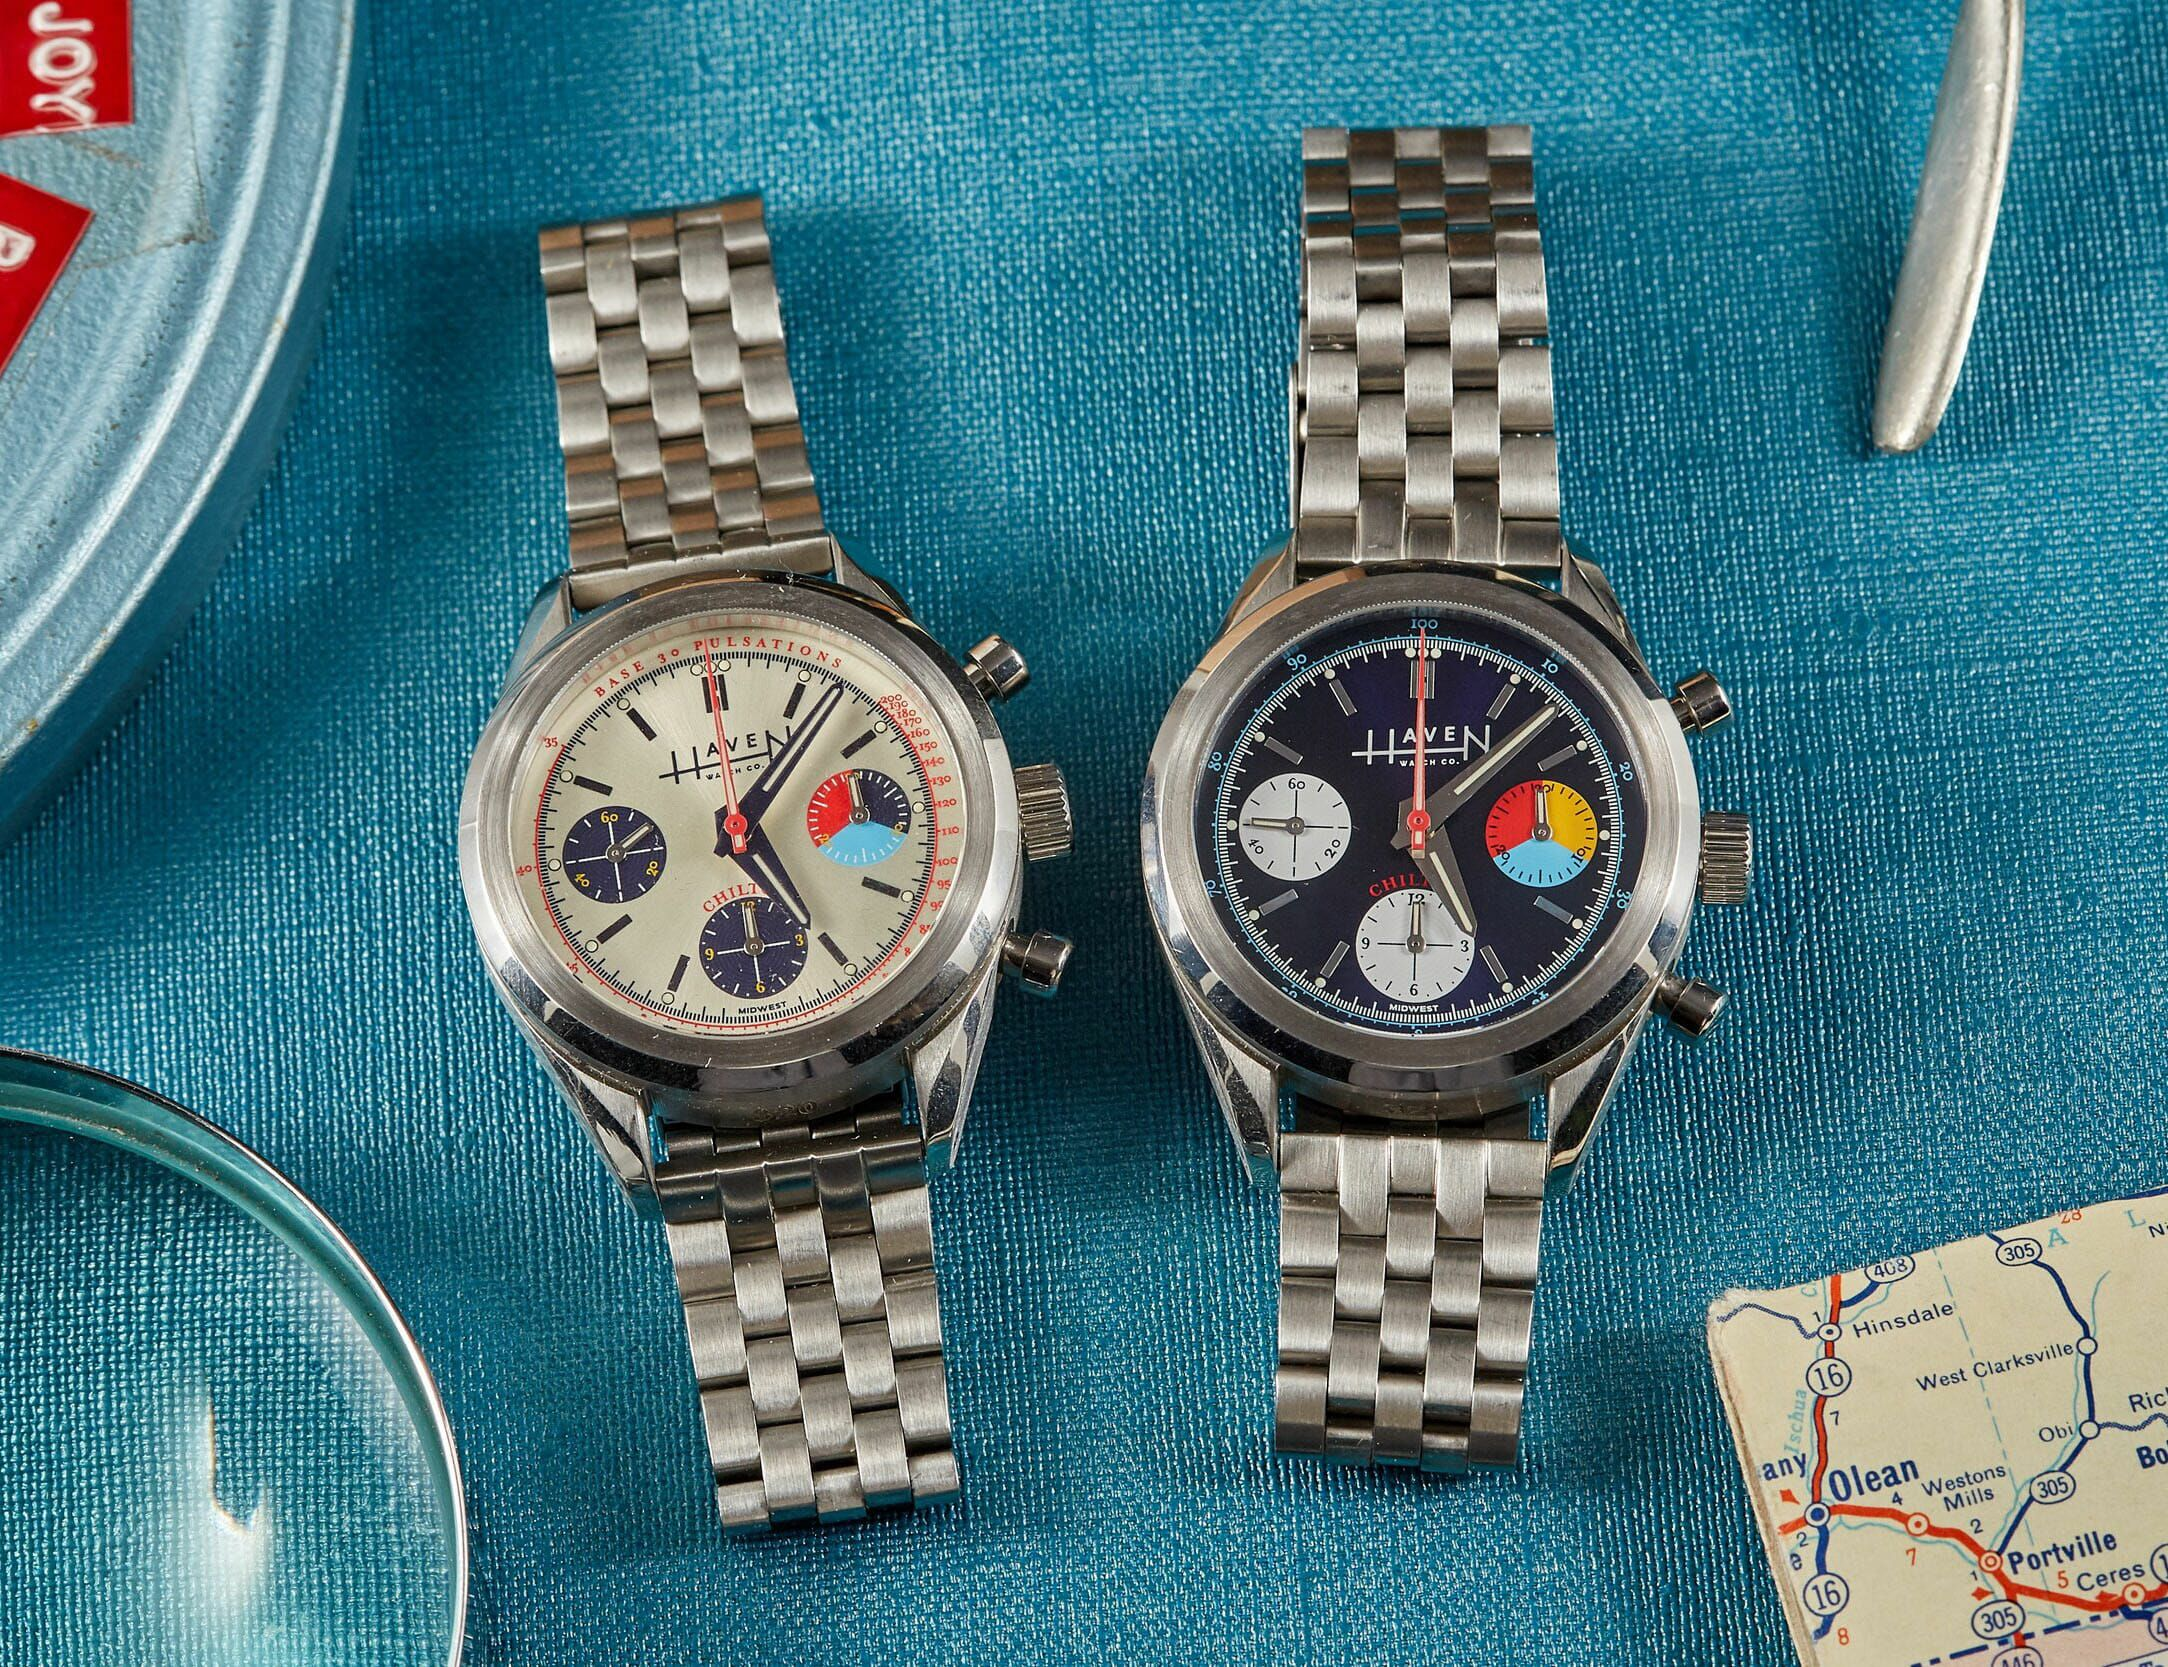 American Watch Brands Are Back – Check These Out